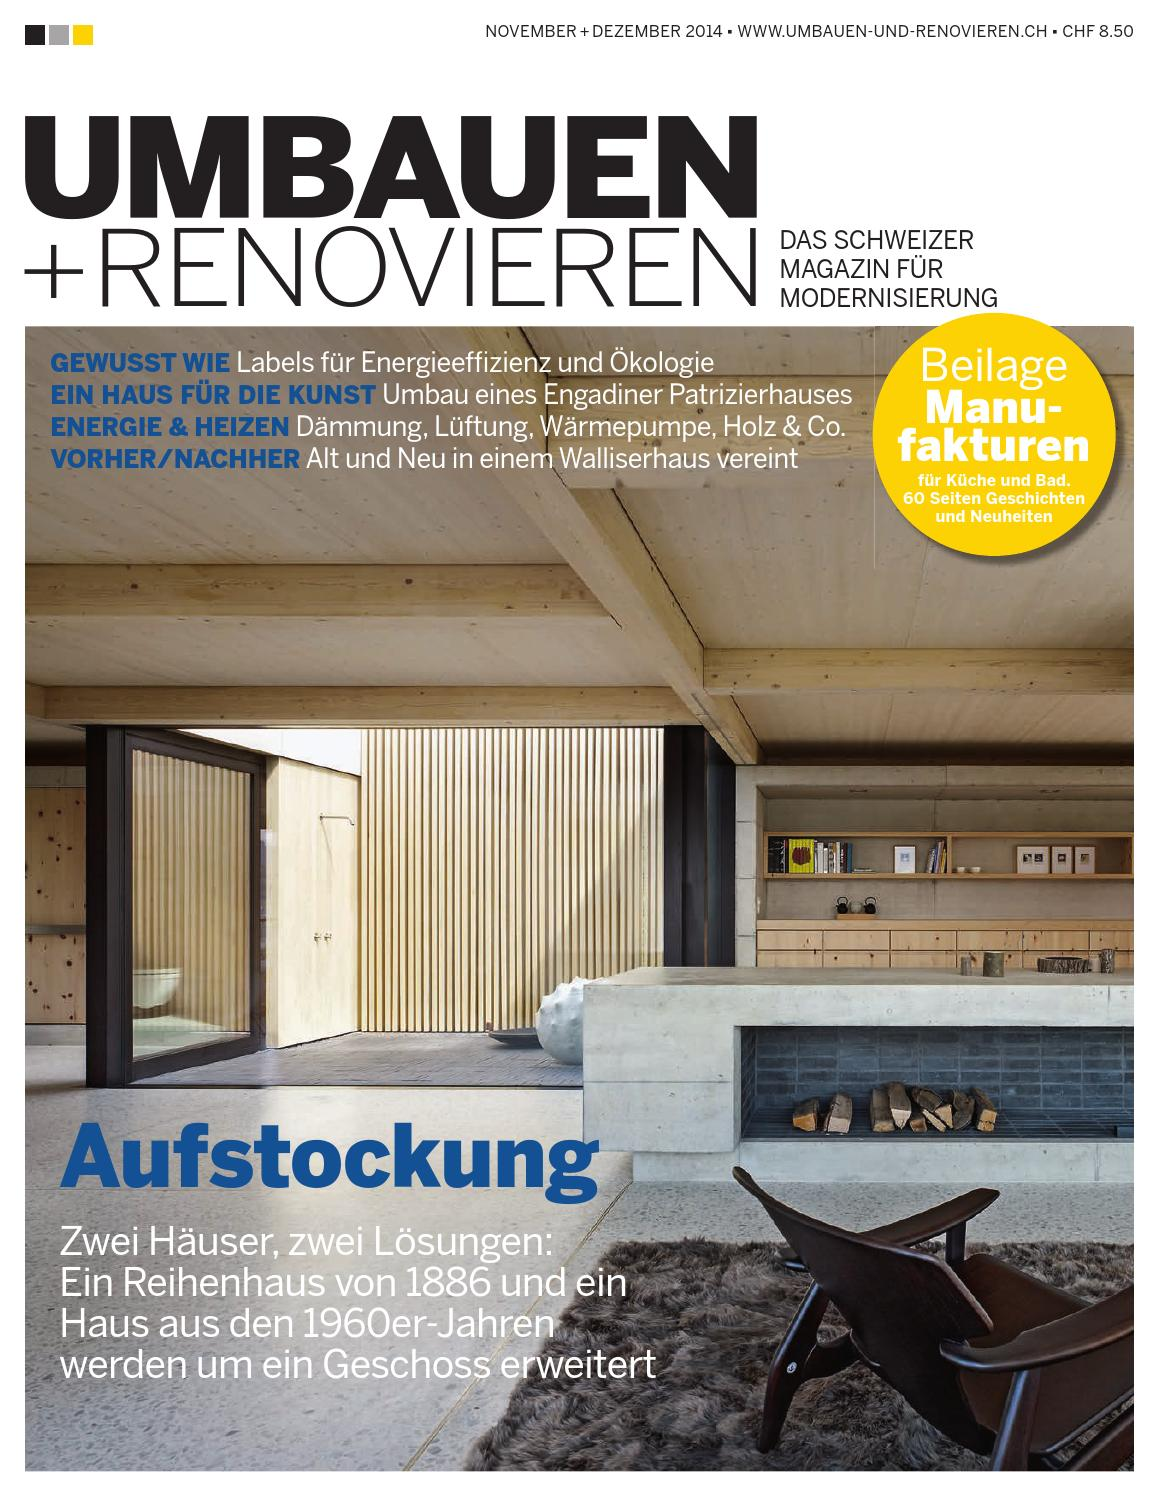 umbauen renovieren 6 2014 by archithema verlag issuu. Black Bedroom Furniture Sets. Home Design Ideas